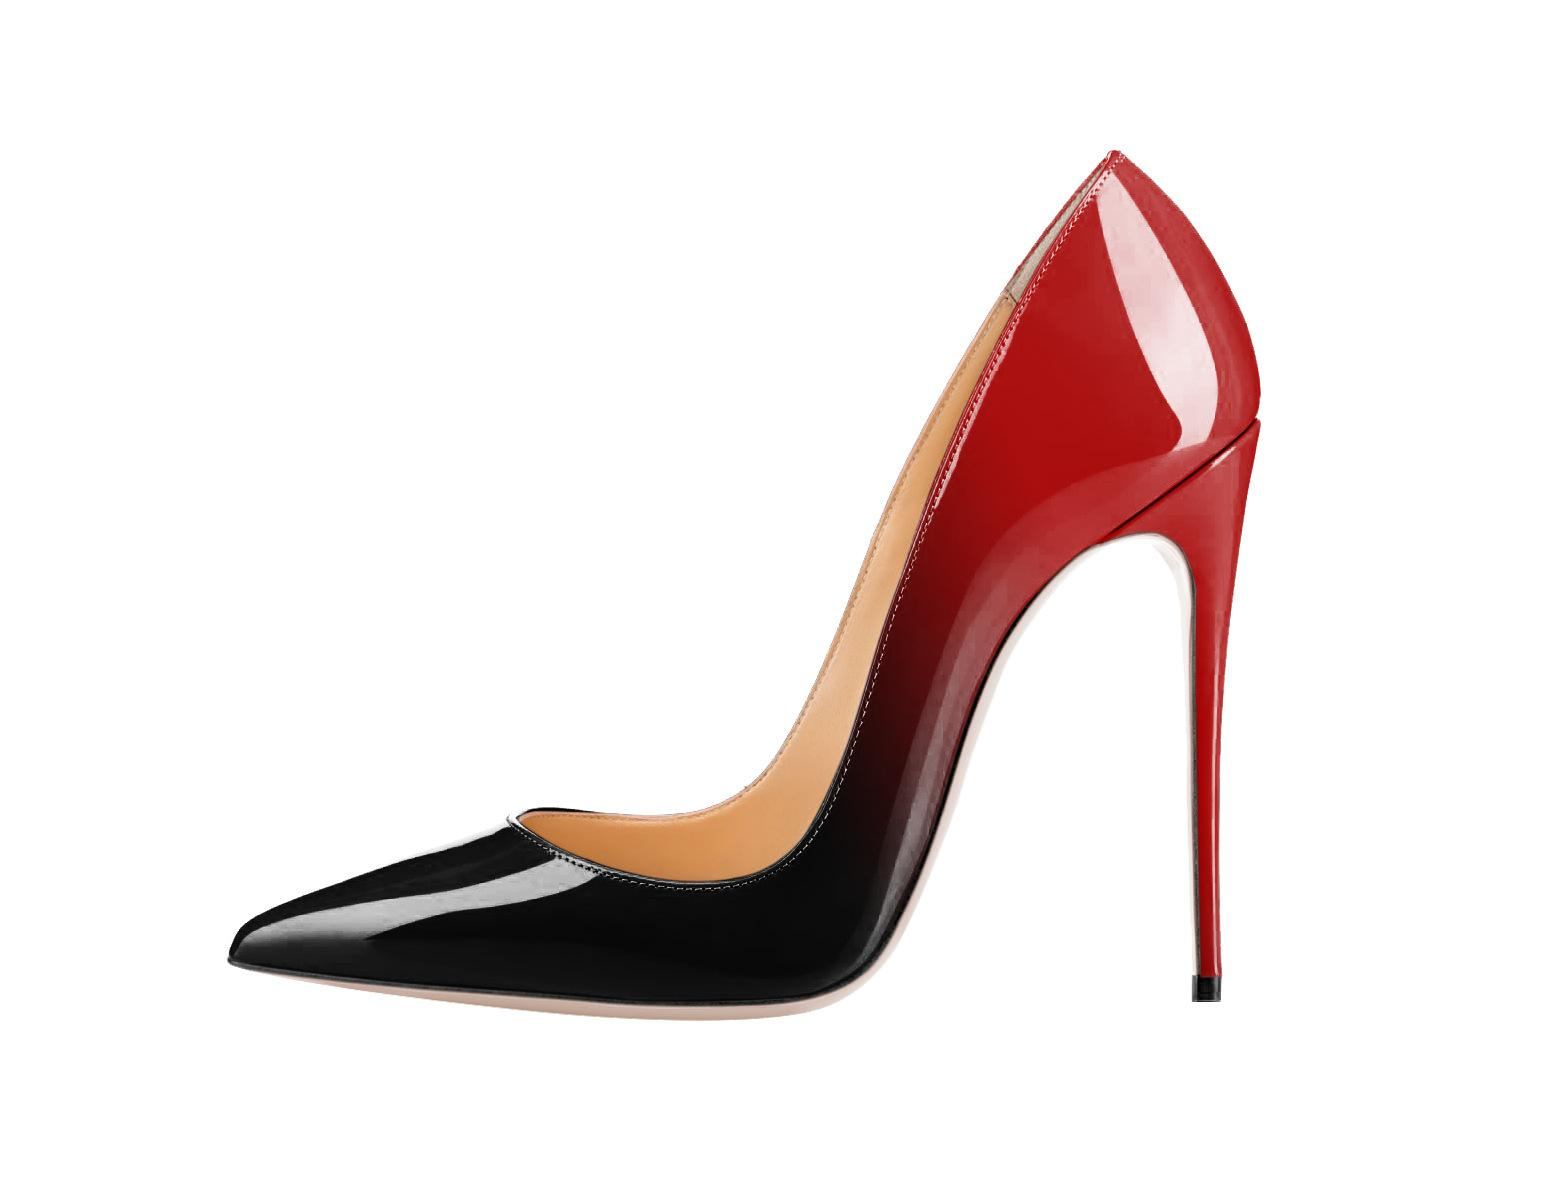 5b6deee03cf Sexy gradient color shallow mouth high heels shoes red bottom lady pointed  toe leather 12cm stiletto heel pumps big size 34-46